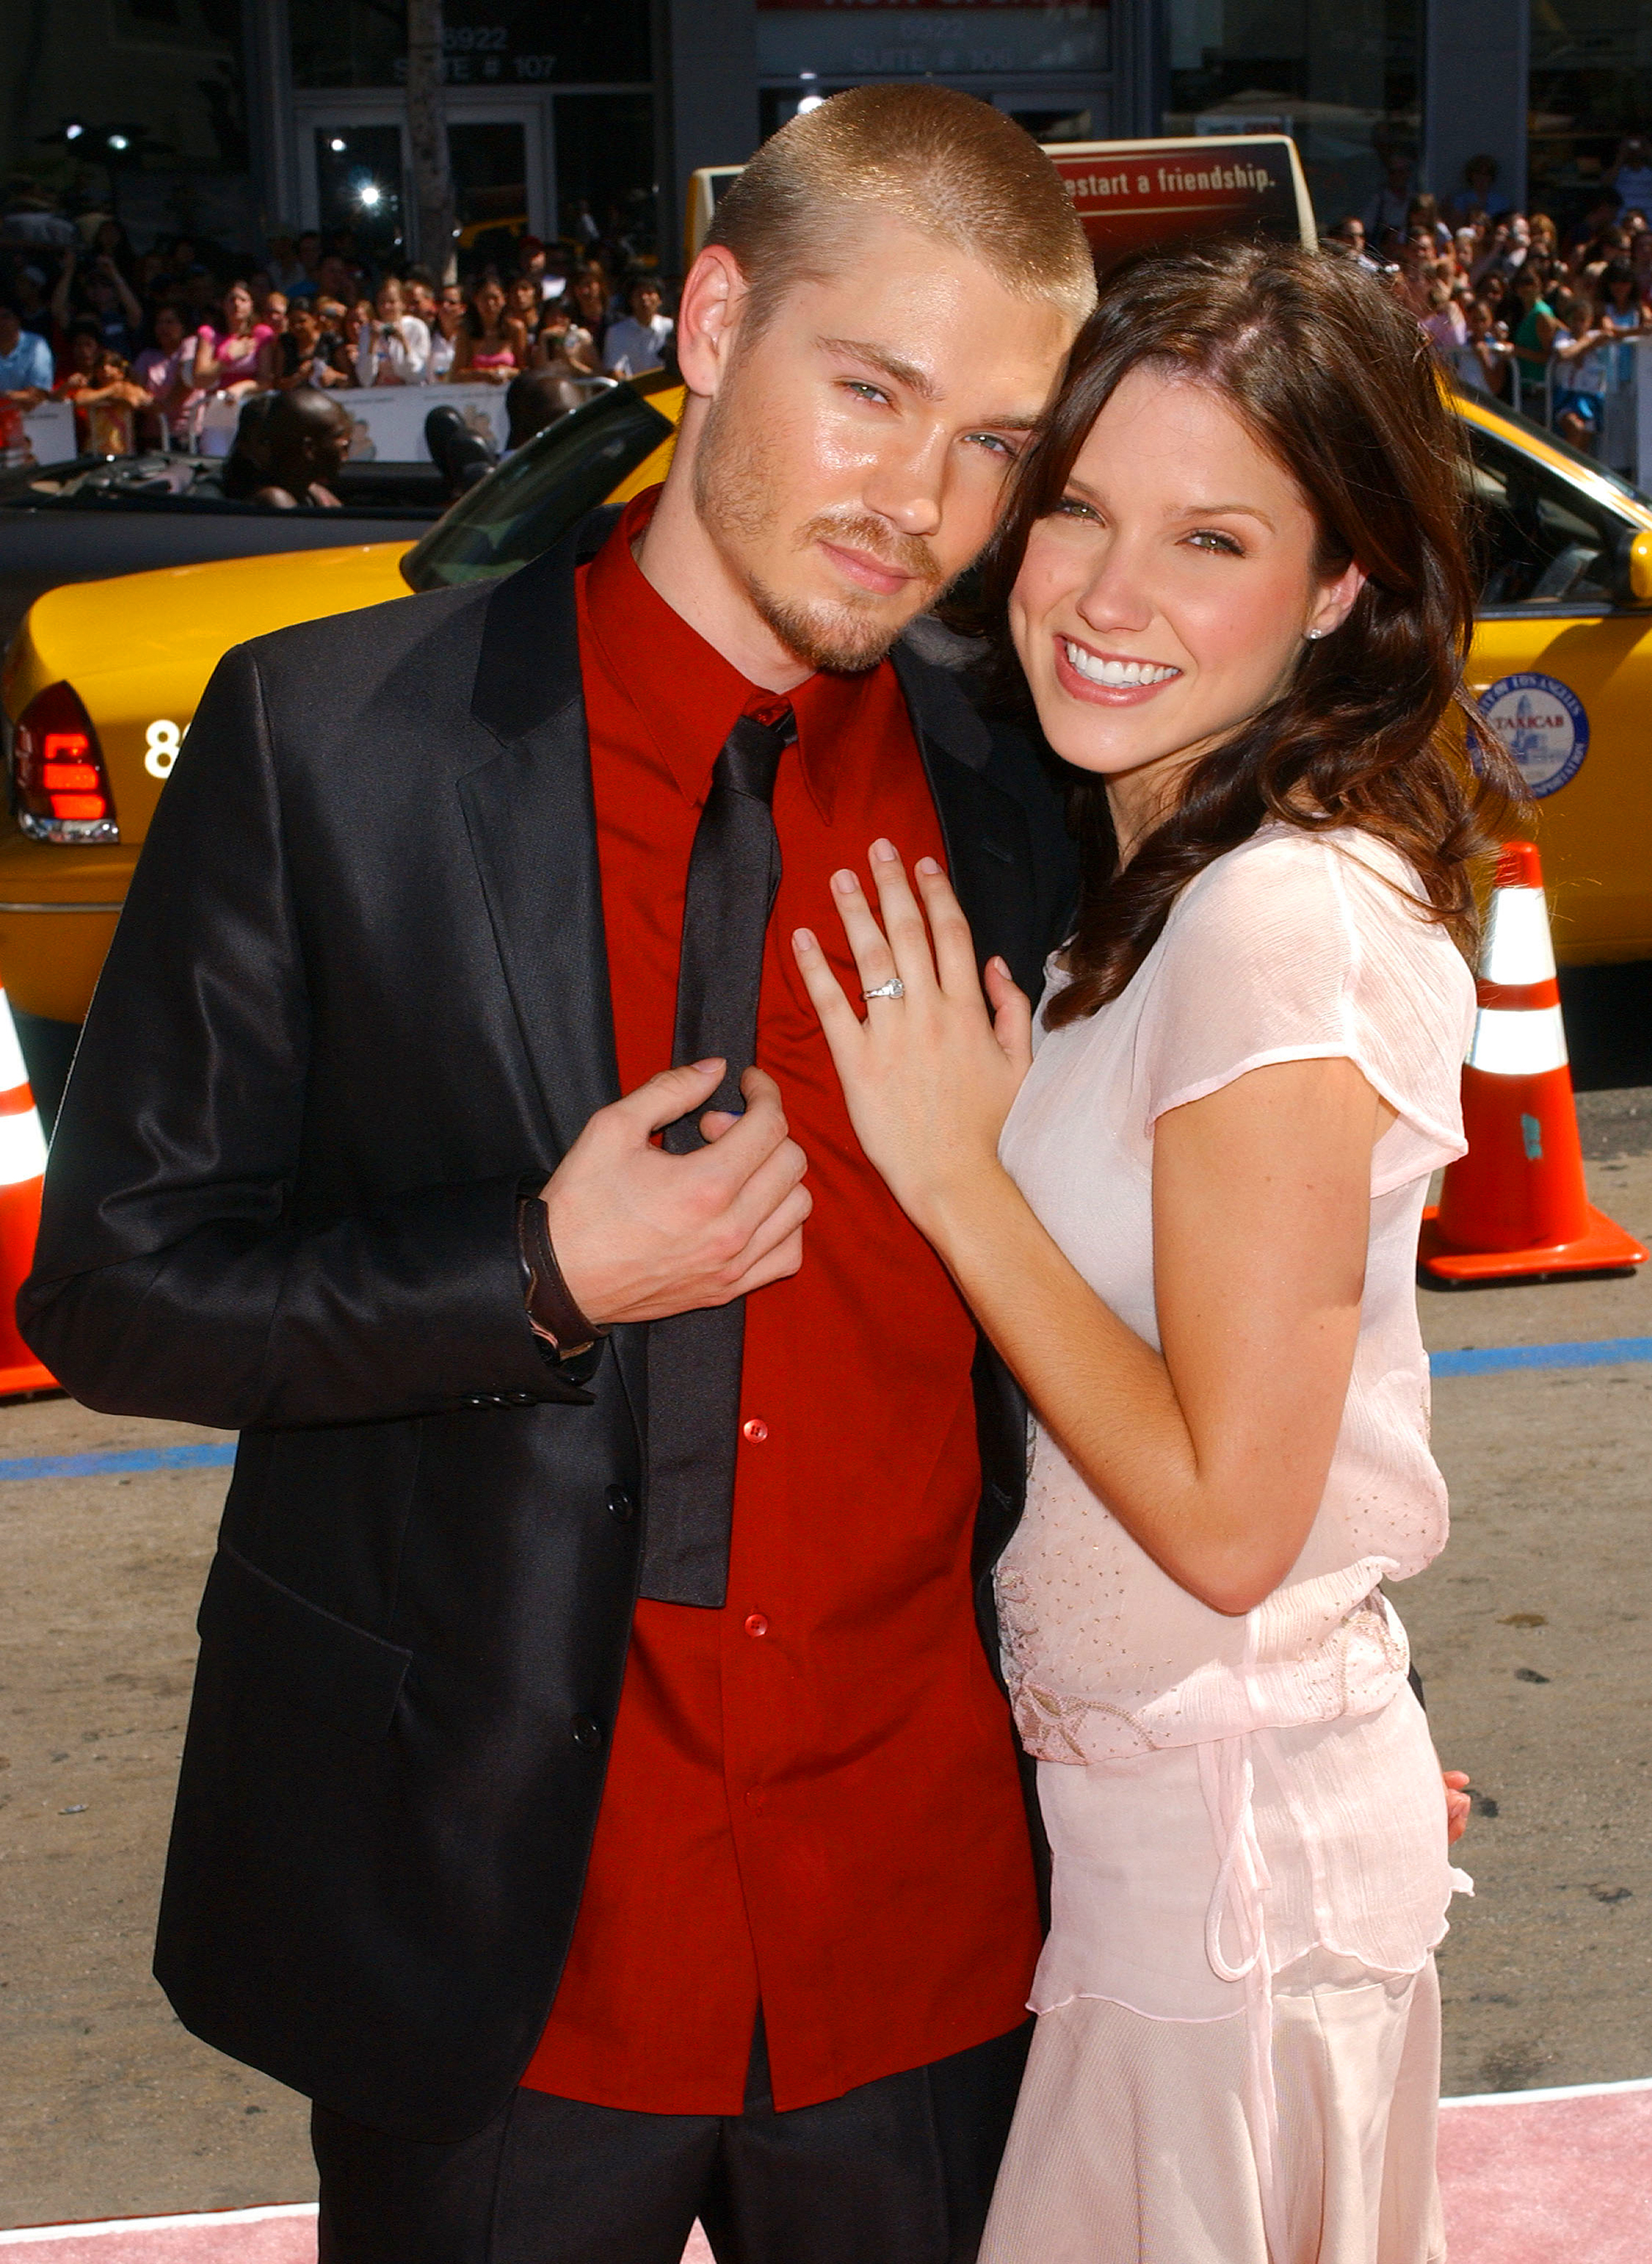 """Hollywoods shortest marriages - """"I can't say there are no hard feelings... I feel hurt, humiliated and broken hearted,"""" Bush, who exchanged handwritten vows with her former One Tree Hill costar in April 2005, said of their split."""